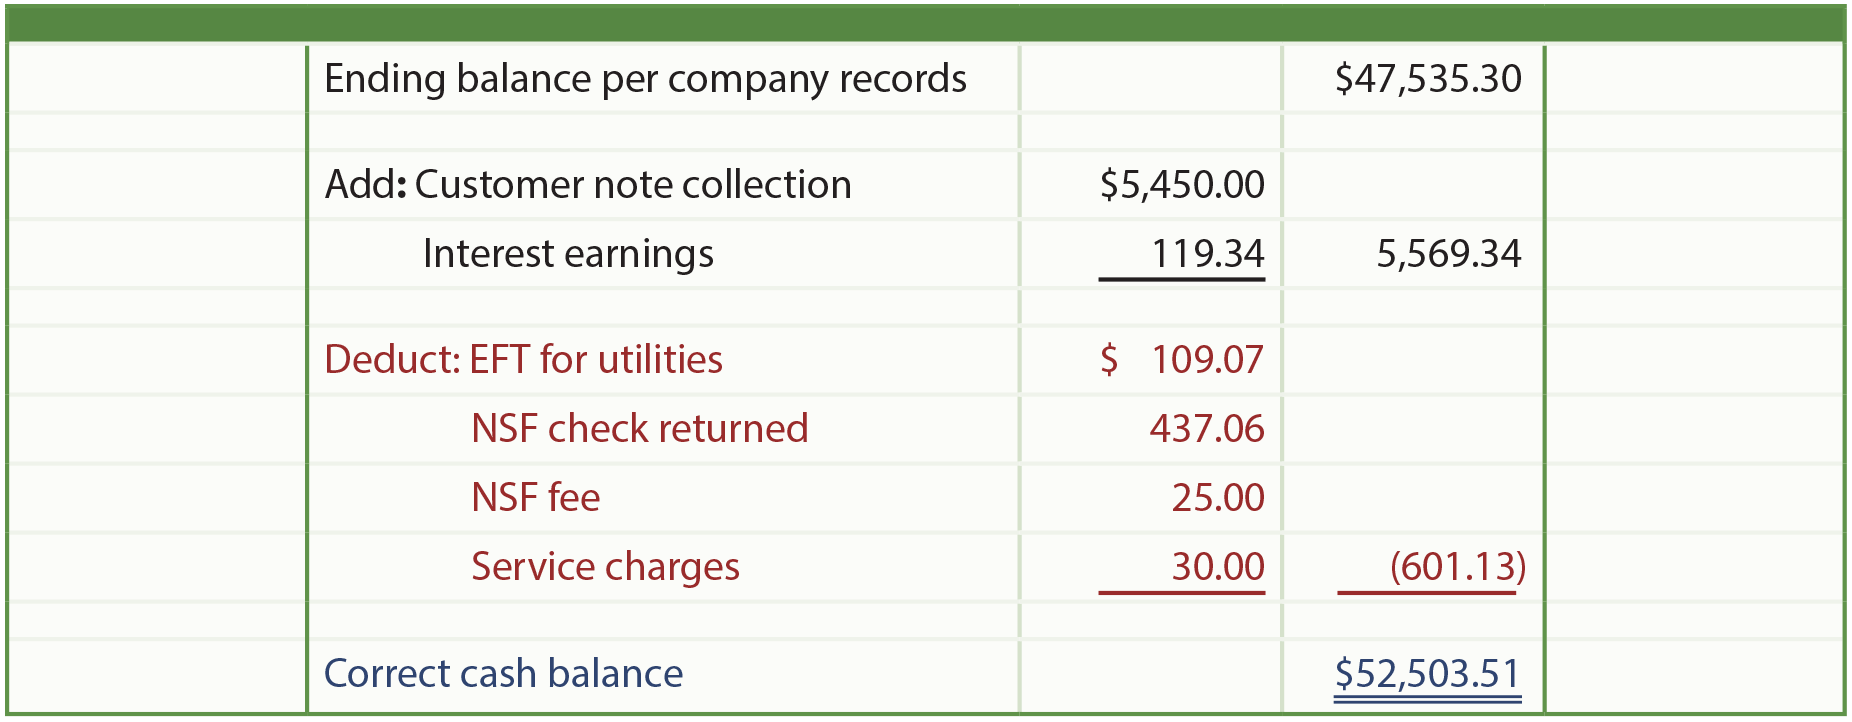 Ending Balance Per Company Records illustration